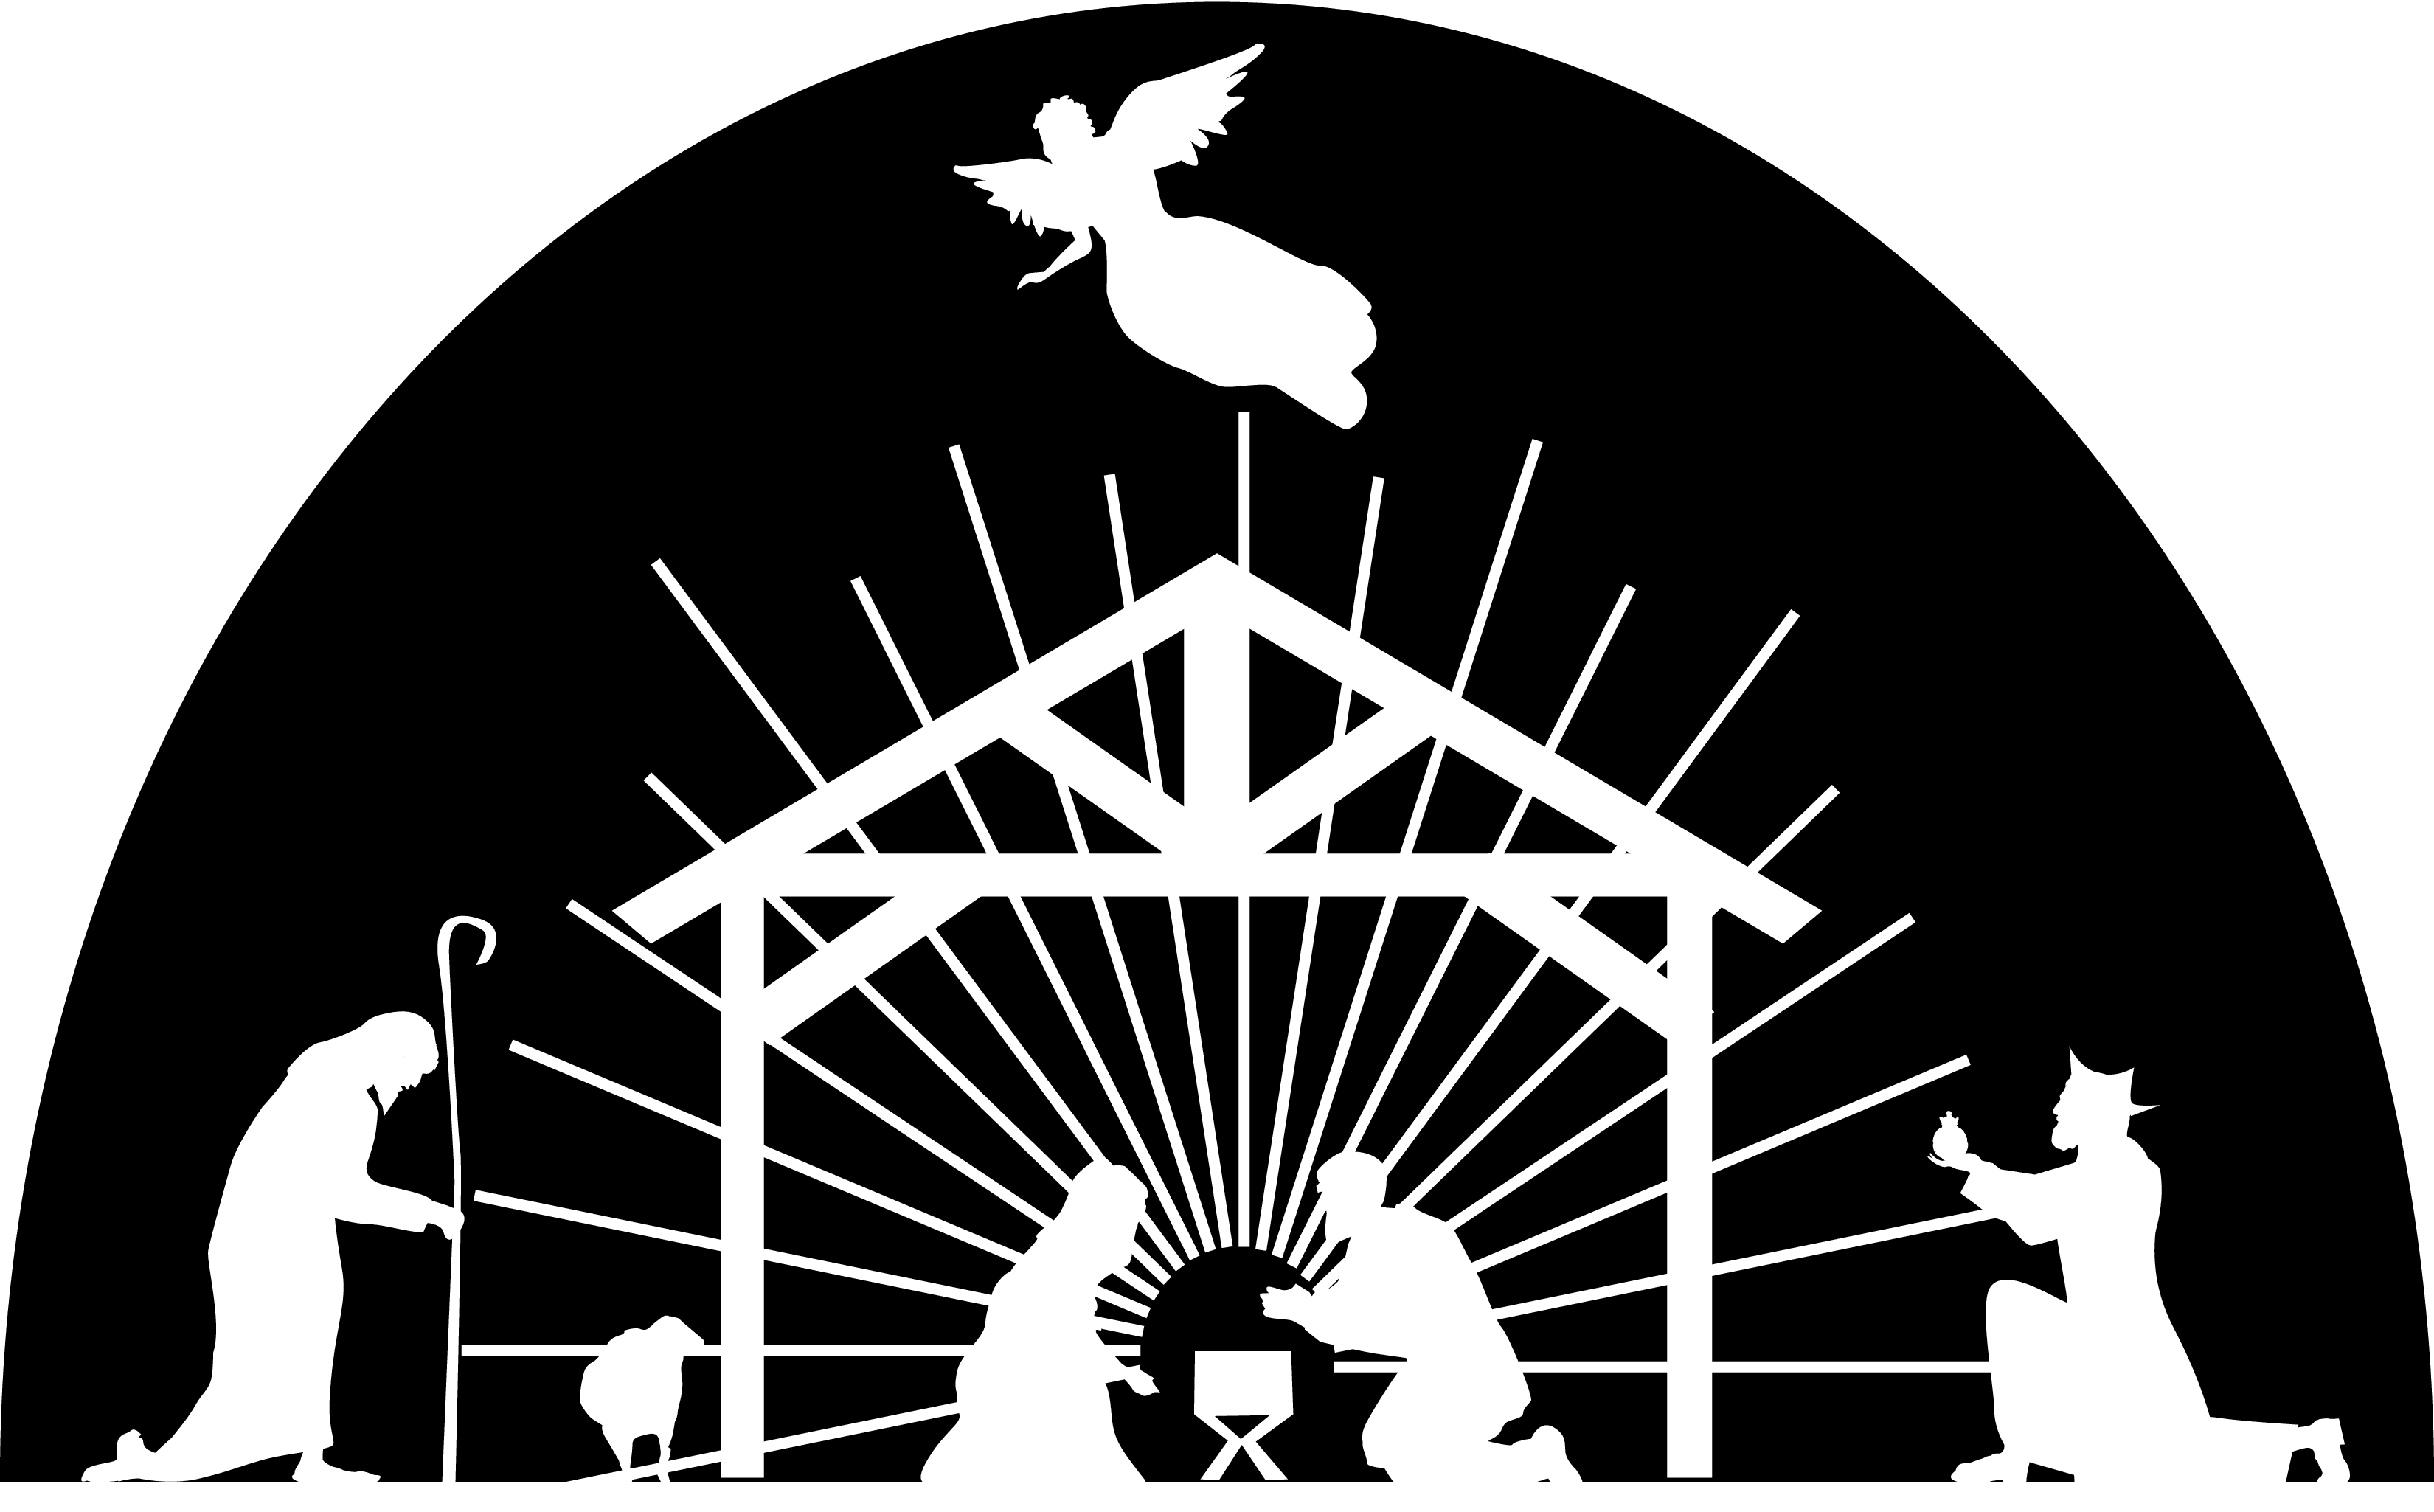 holy family silhouette clip art holy family silhouette at getdrawings free download clip silhouette art holy family